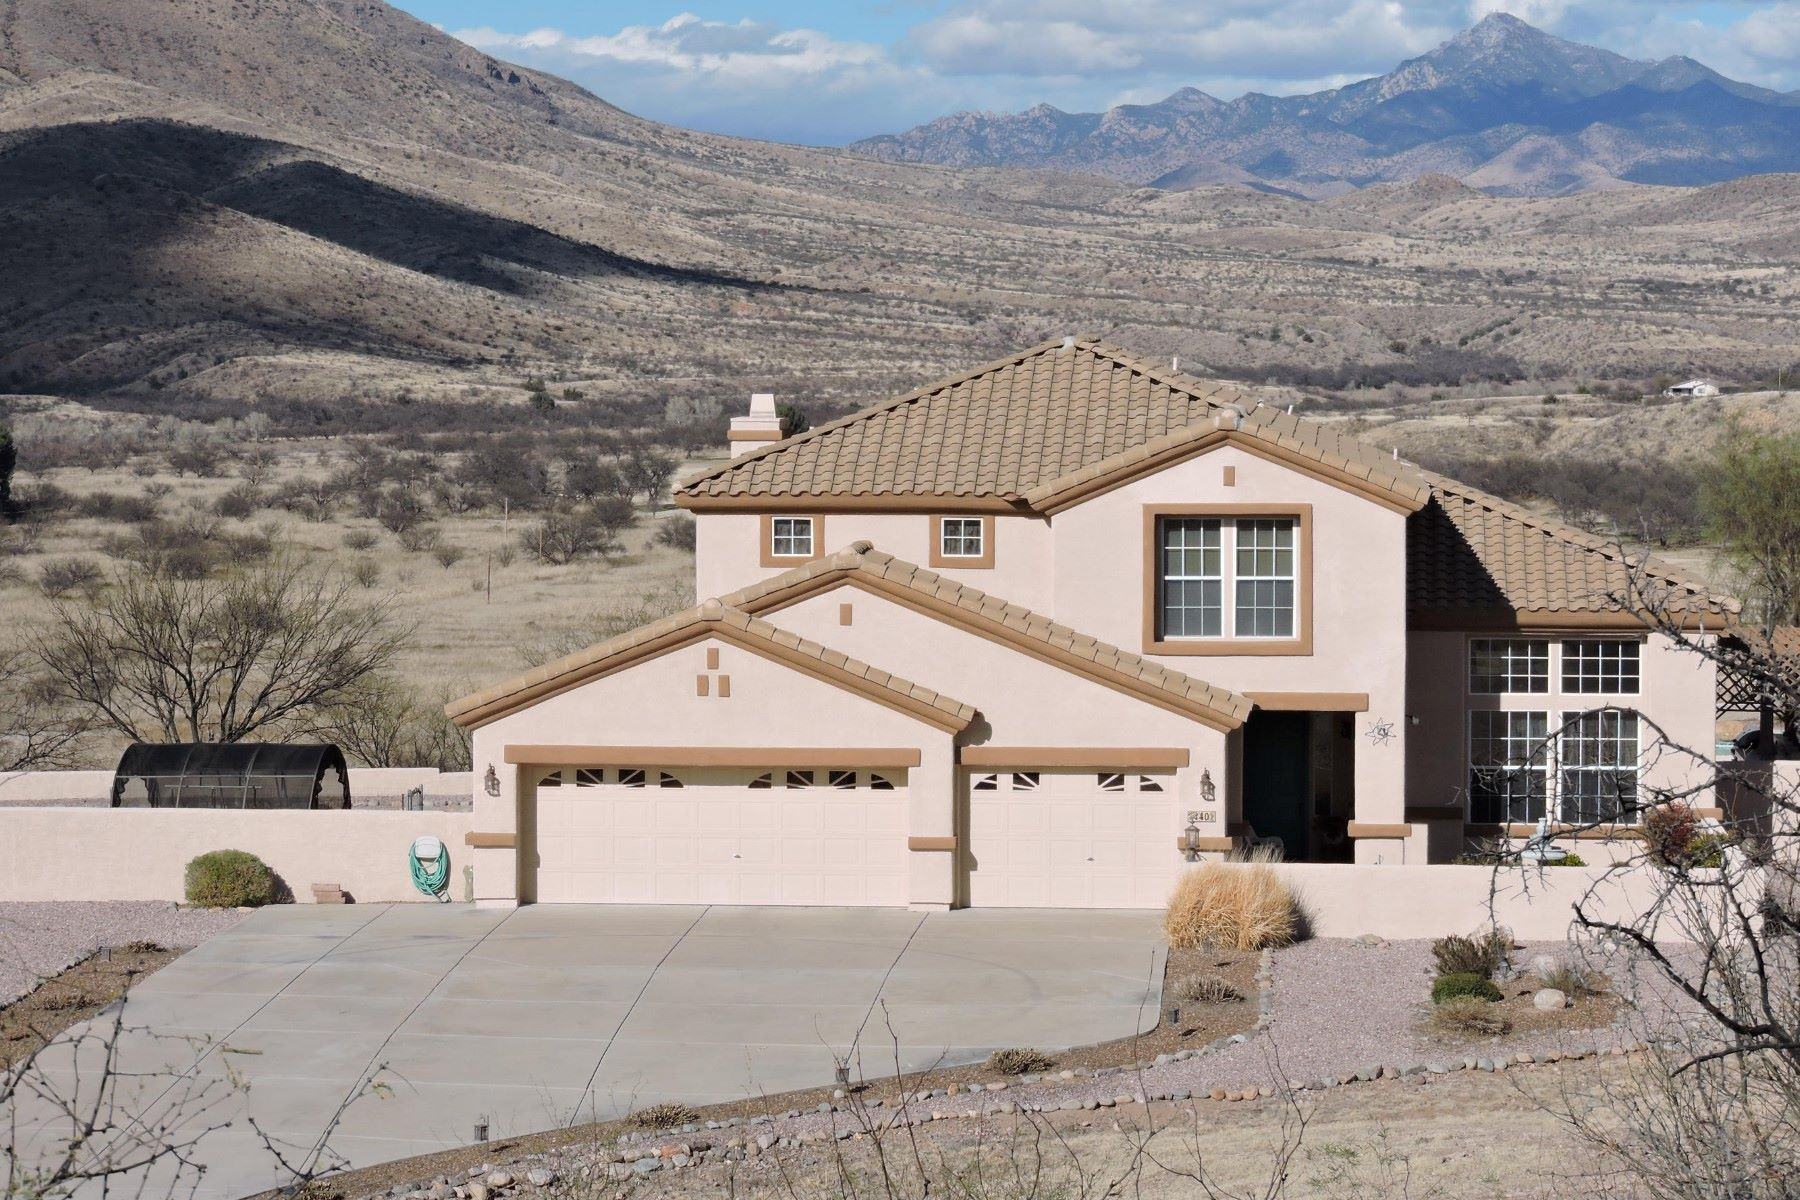 Single Family Home for Sale at Gracious Mediterranean style home with spectacular views 40 Kents Ave Rio Rico, Arizona, 85648 United States